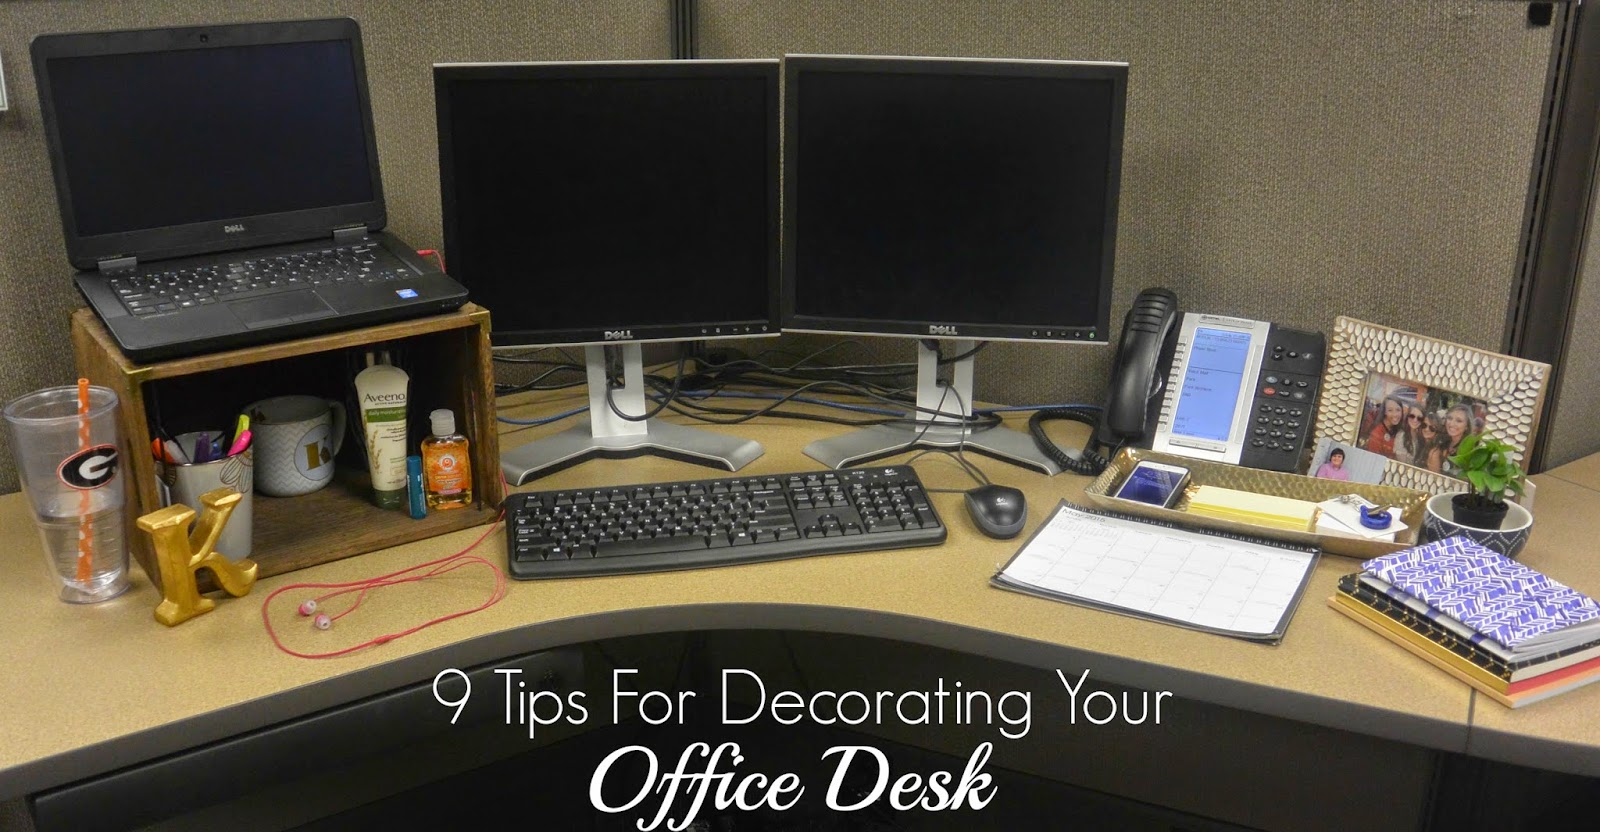 decorating office desk. Thursday, April 16, 2015. Make Your Office Cubicle Decorating Desk